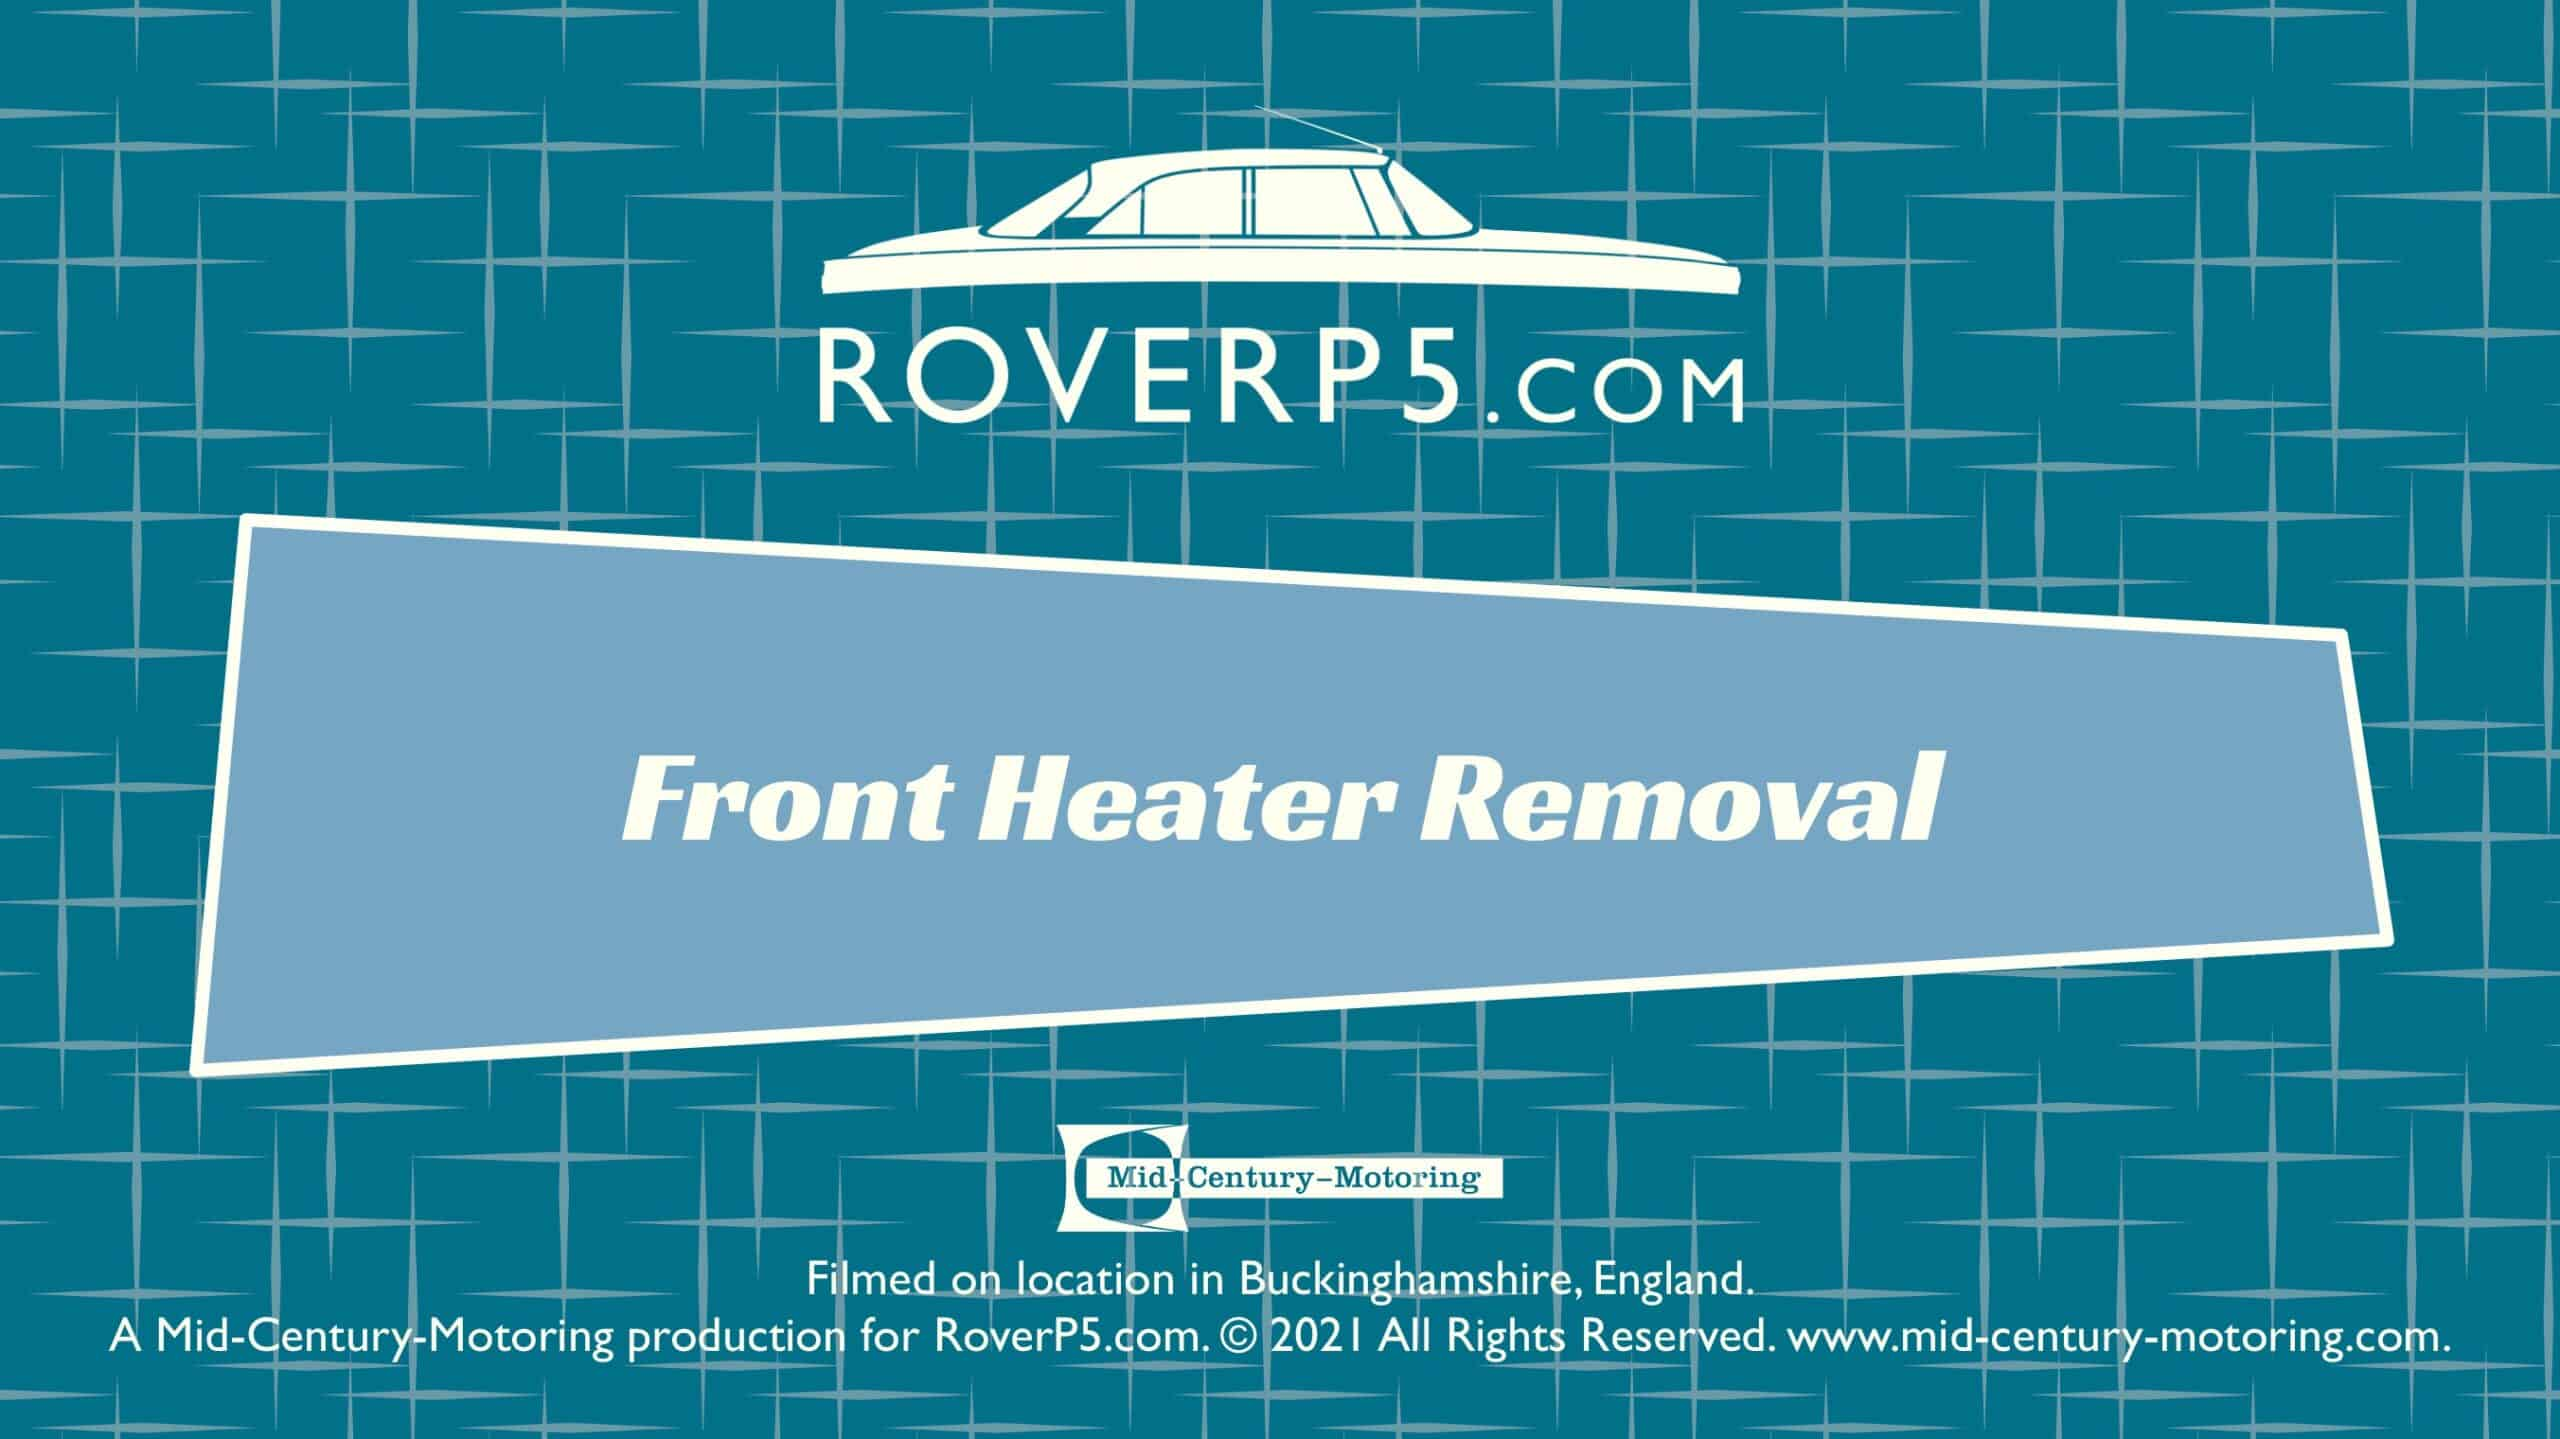 RoverP5.com Video: Front Heater Removal